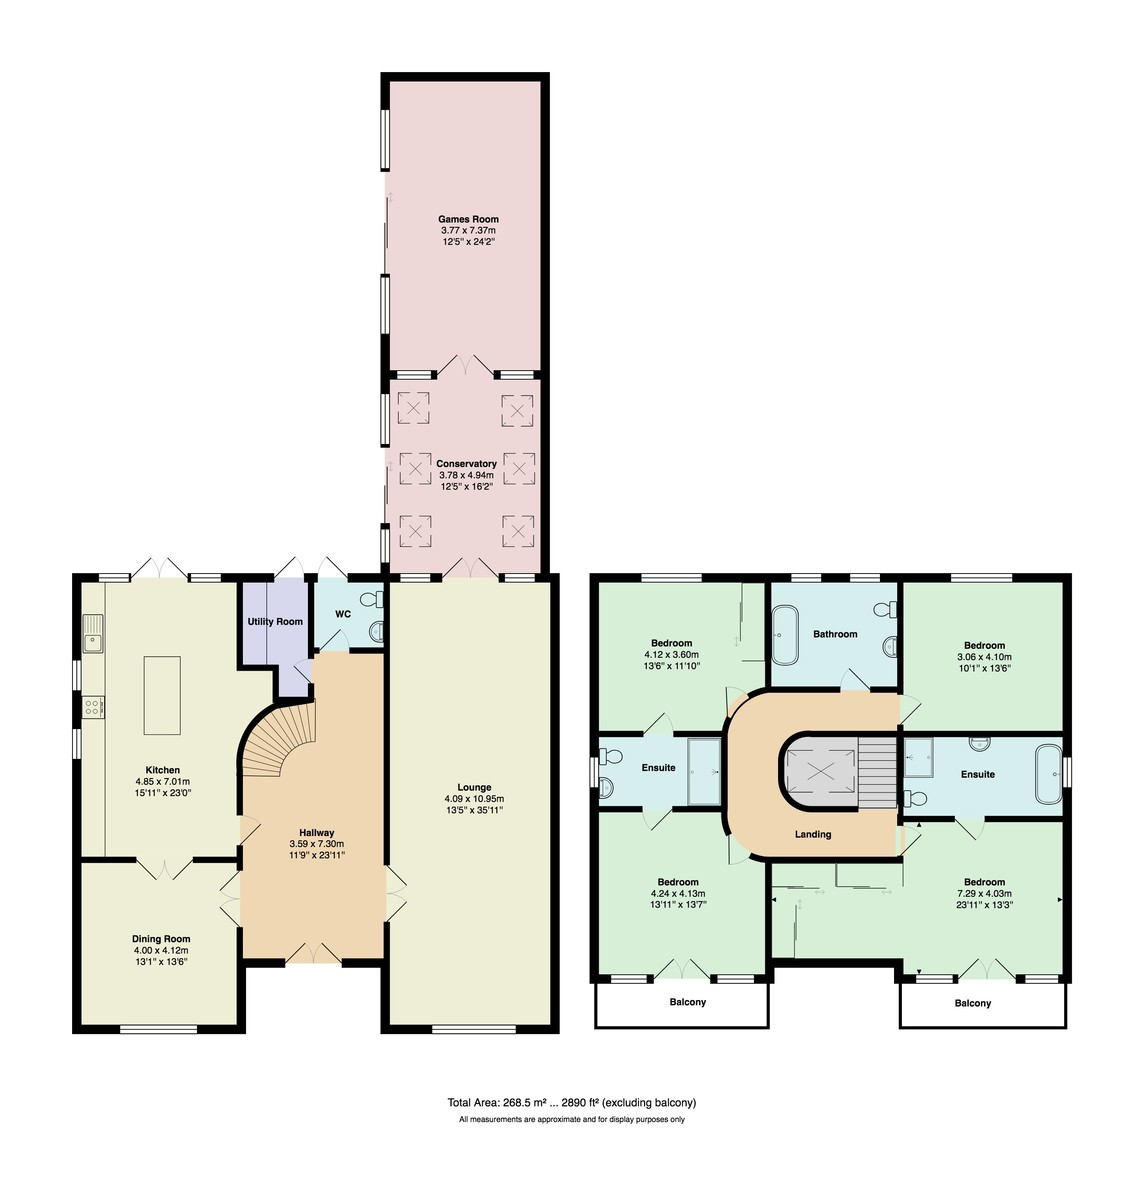 Carbery Avenue, Southbourne floorplan